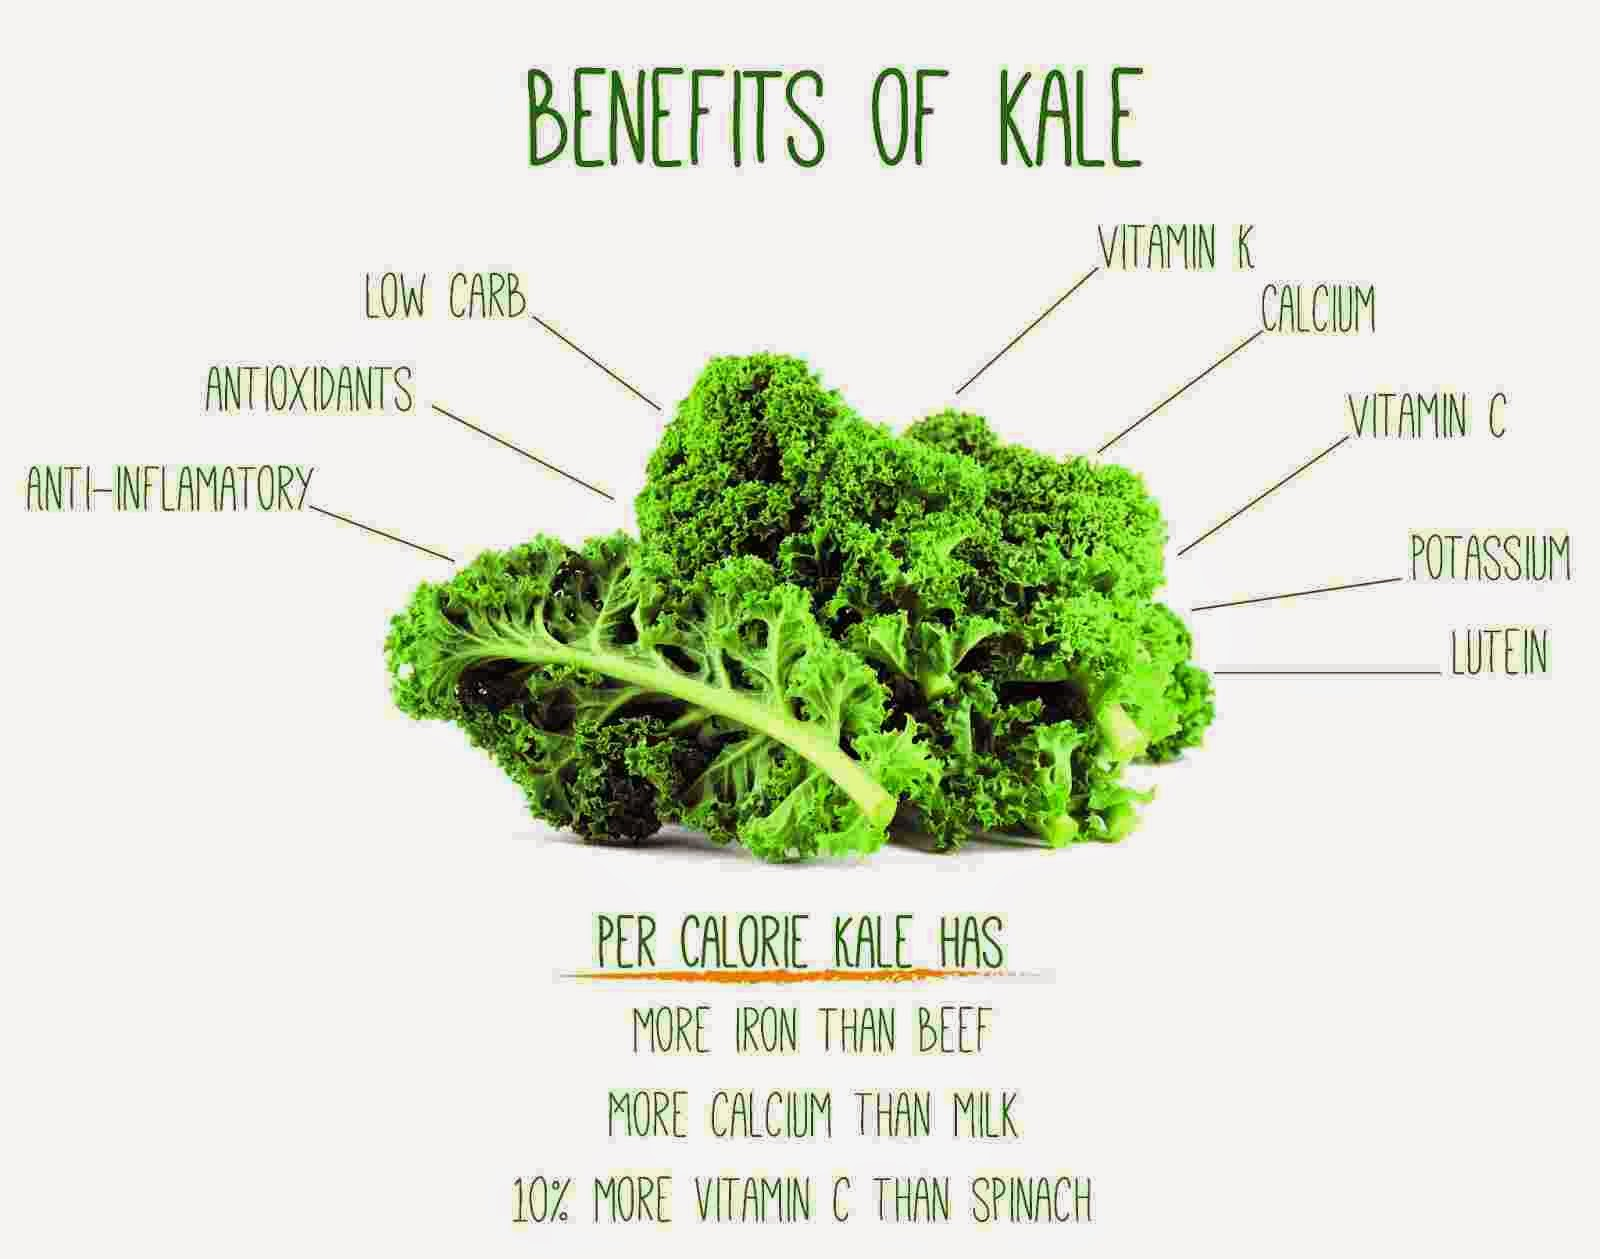 Top 10 Health Benefits of Kale